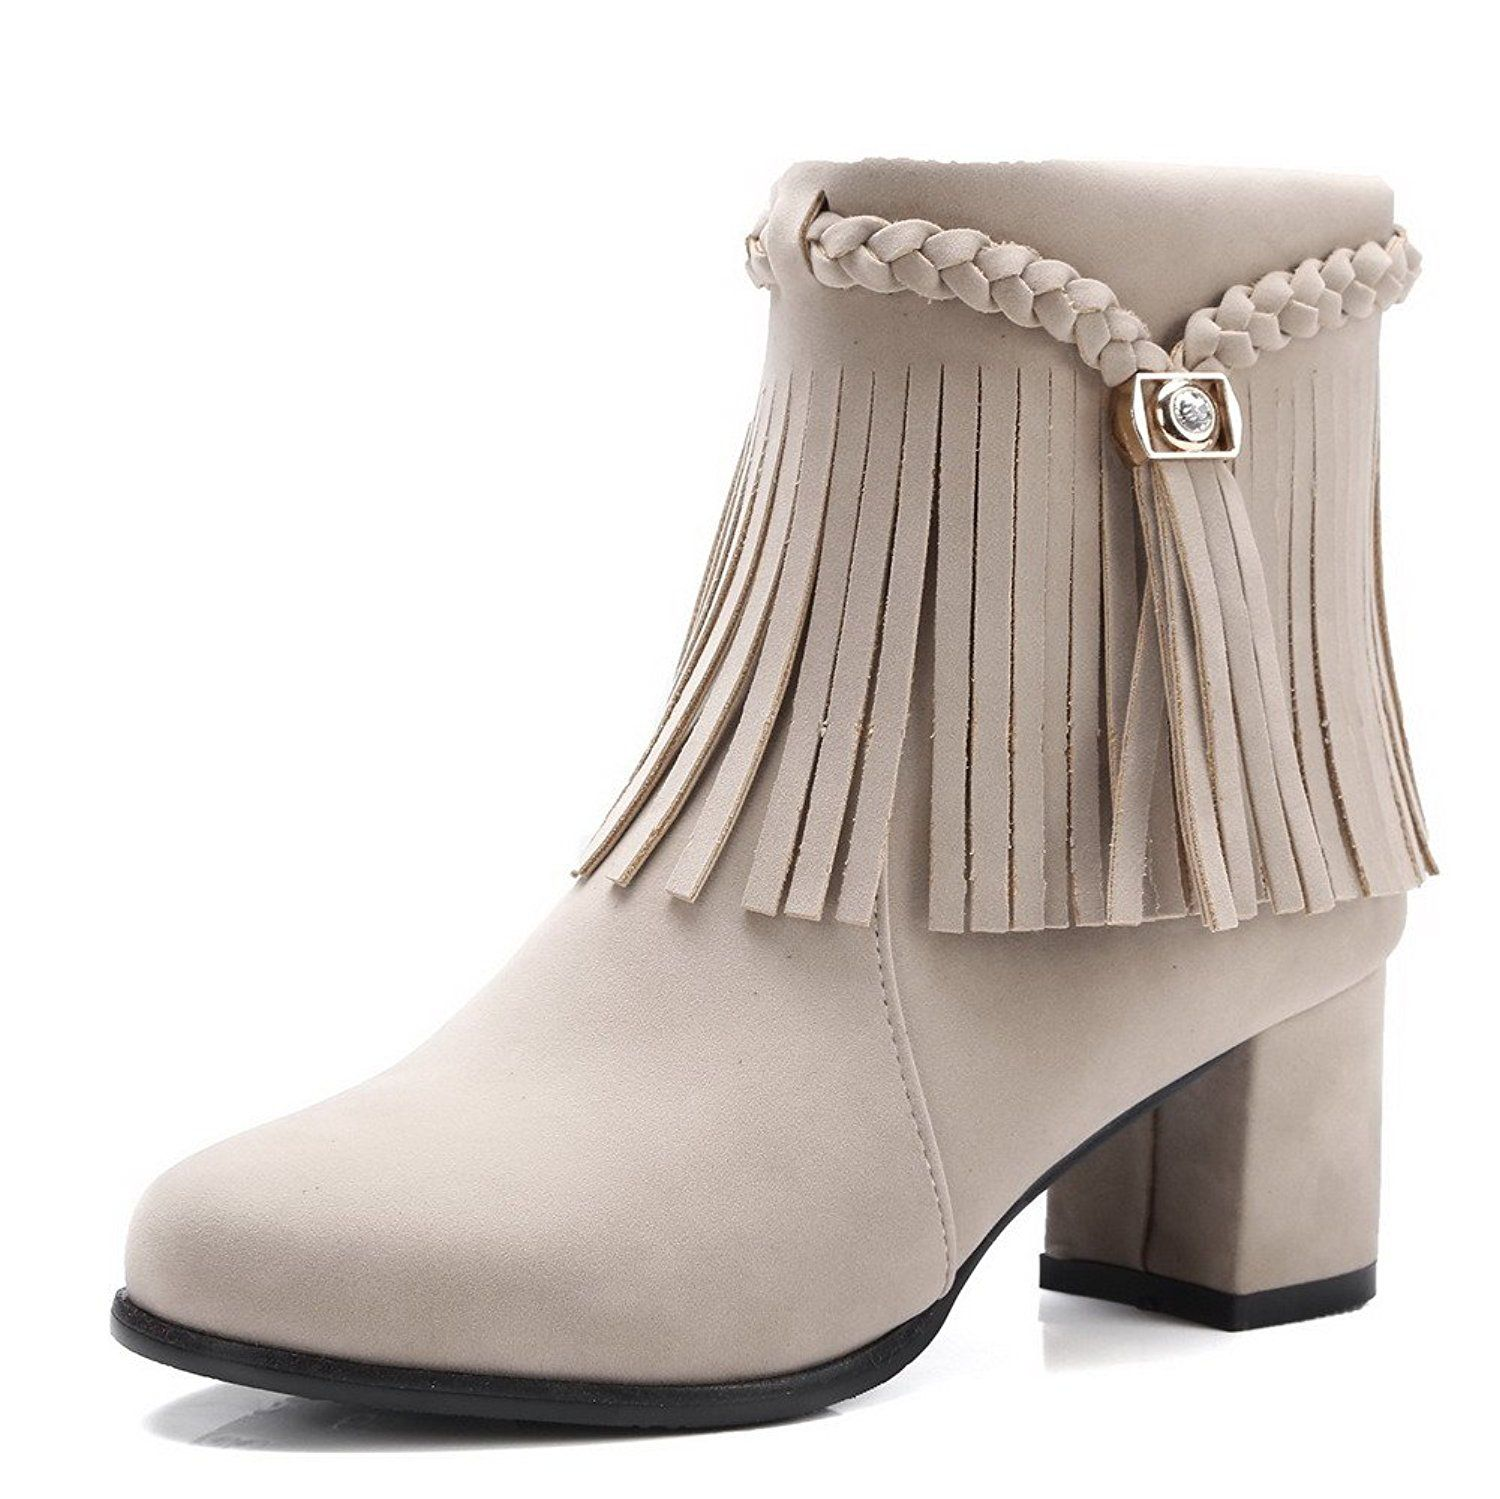 Women's Frosted Low Top Fringed Zipper High Heels Boots